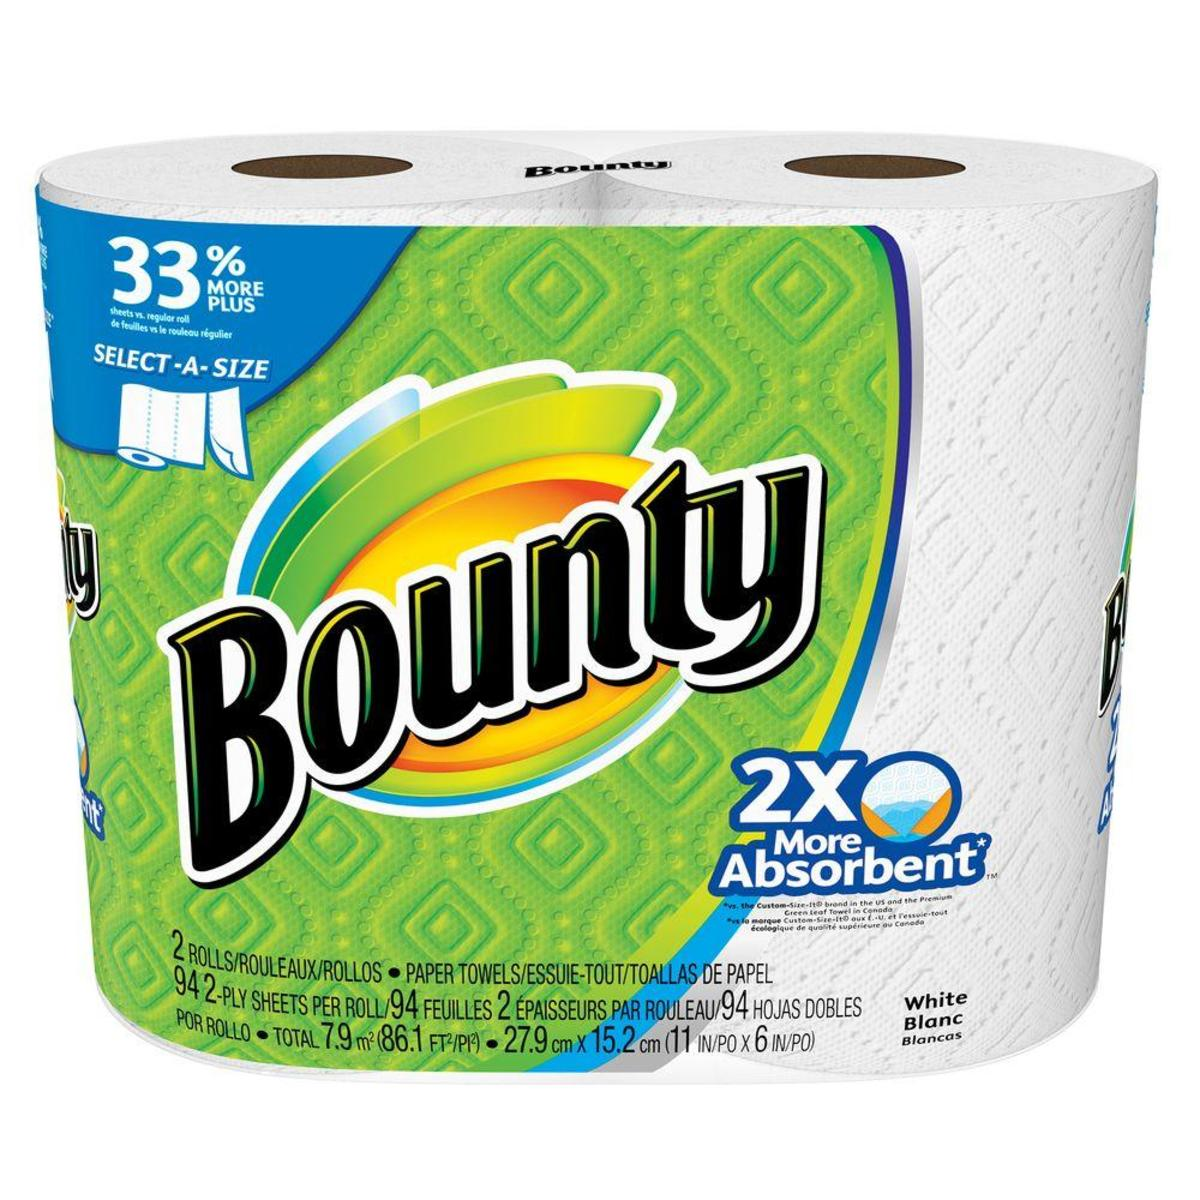 In 1965, Bounty paper towels first appeared on grocery store shelves.